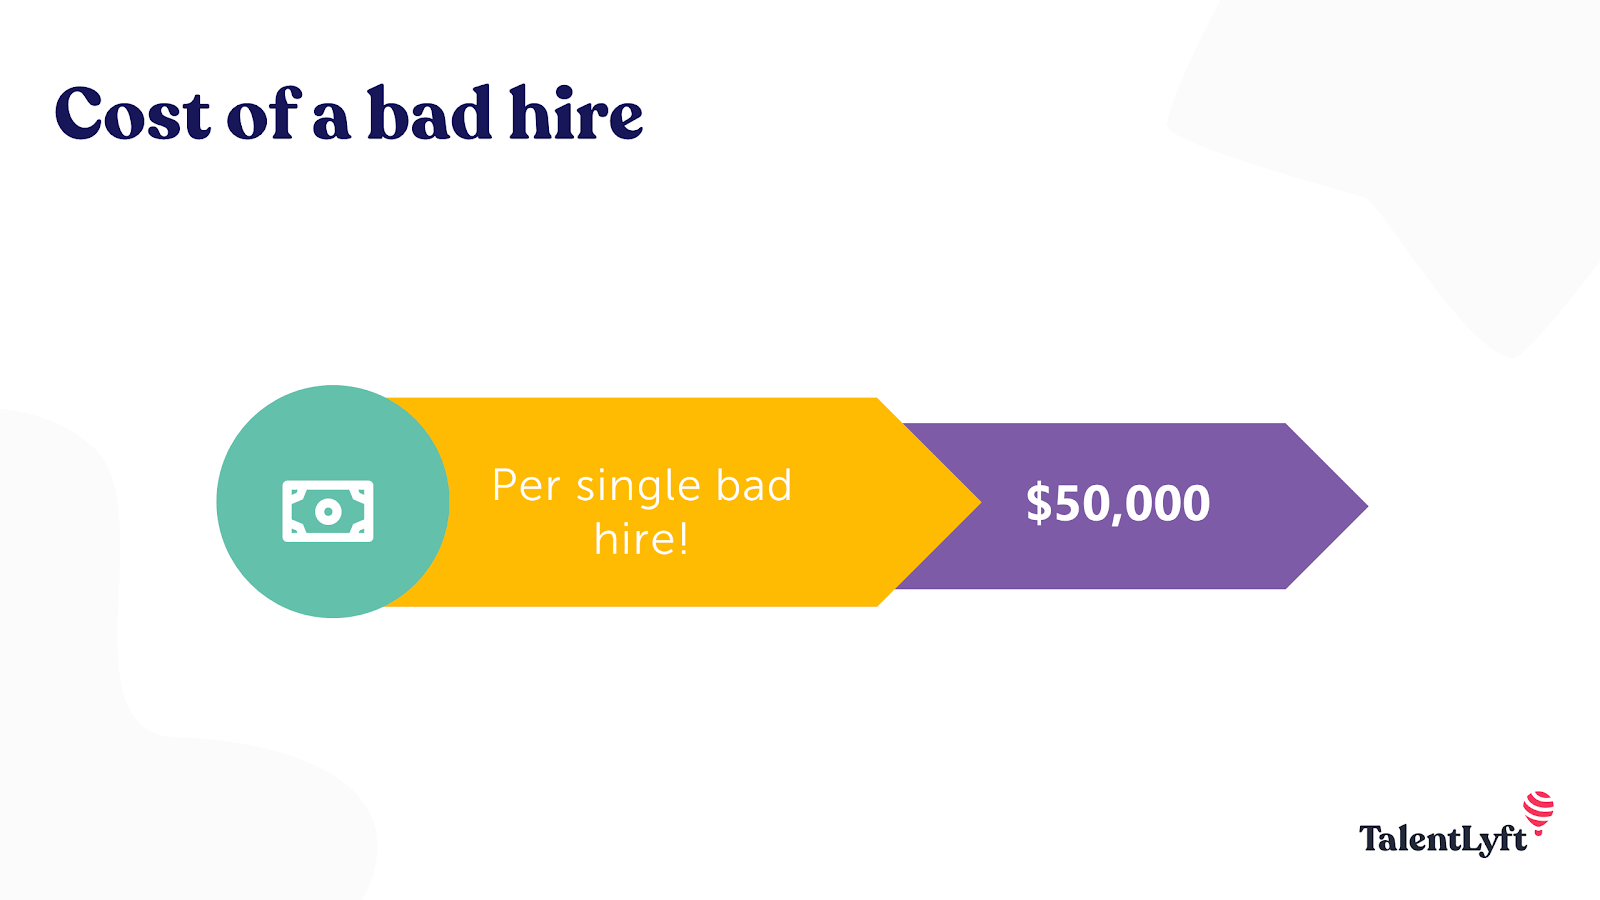 Cost of a bad hire statistic